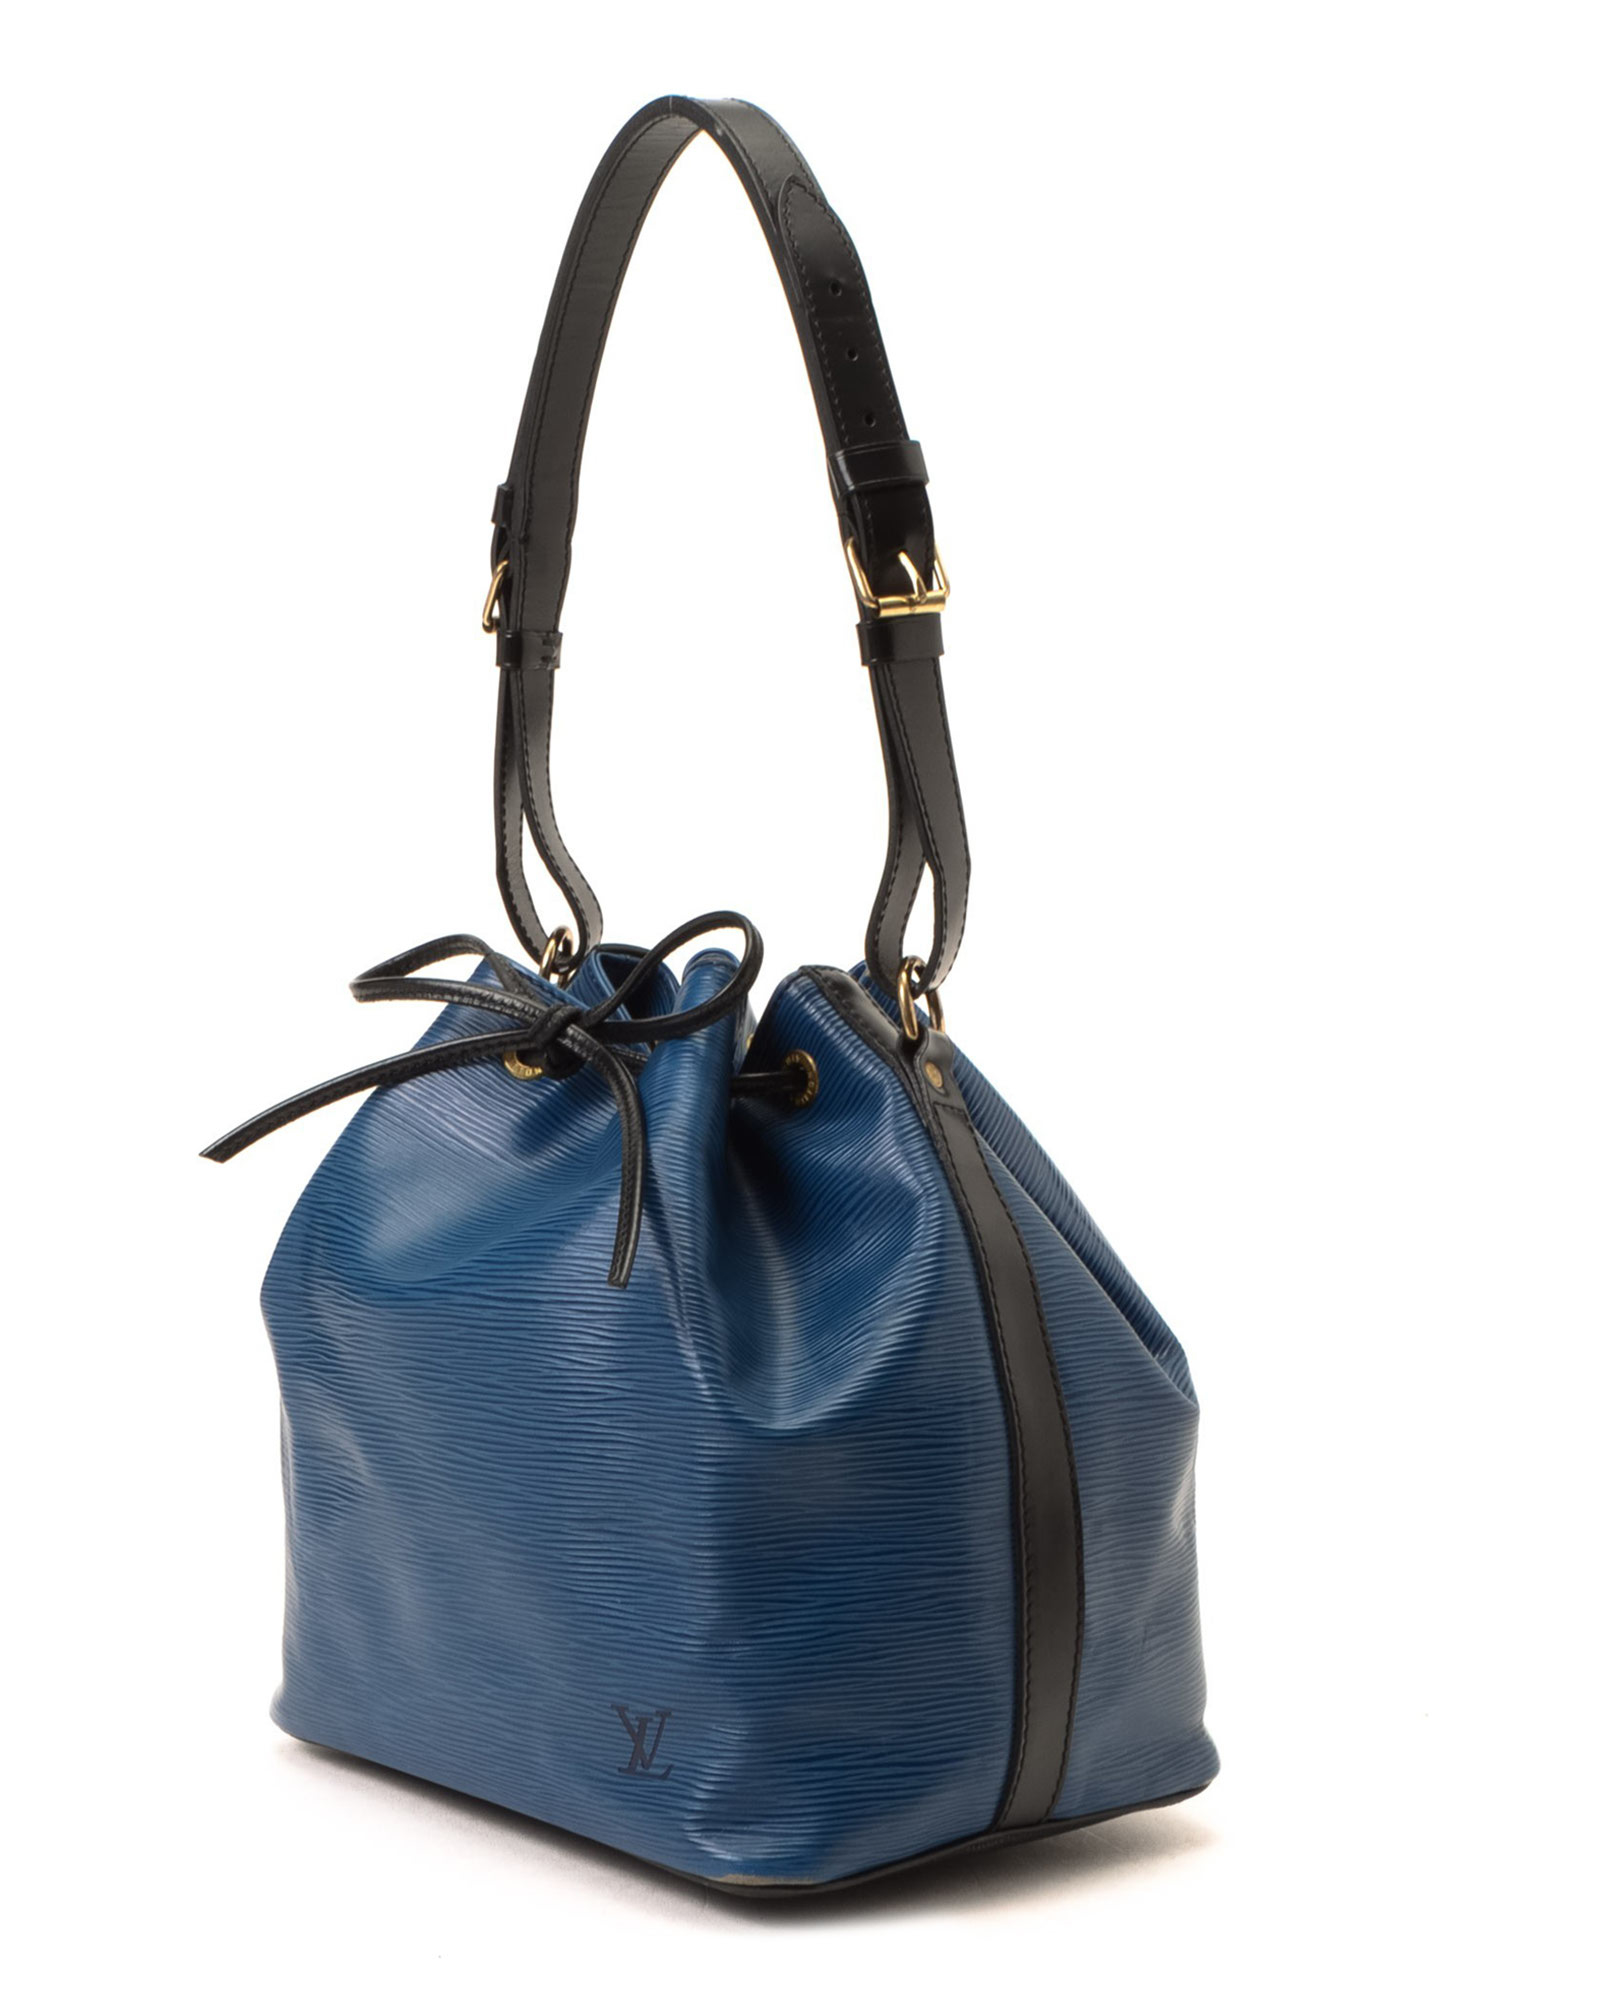 27f4a2931d27 Top Images for Louis Vuitton Blue Bag on picsunday.com. 27 12 2018 to 10 10